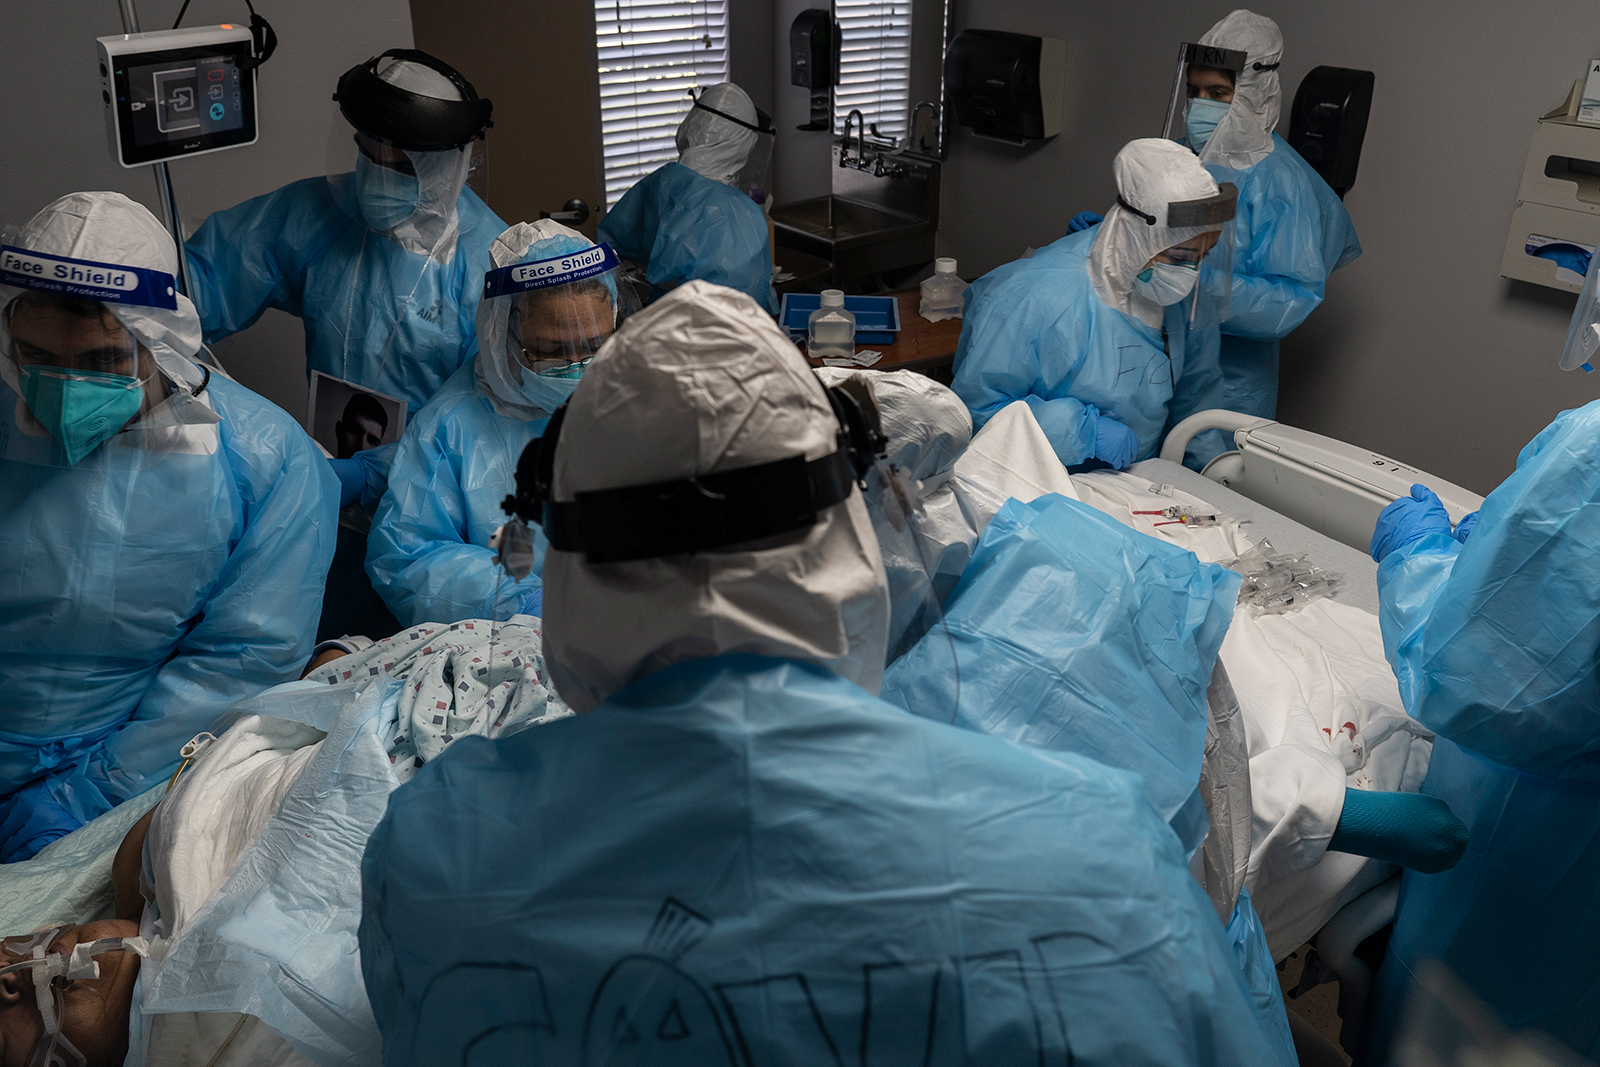 Medical staff members treat a patient suffering from Covid-19 at the United Memorial Medical Center (UMMC), in Houston, on October 31.